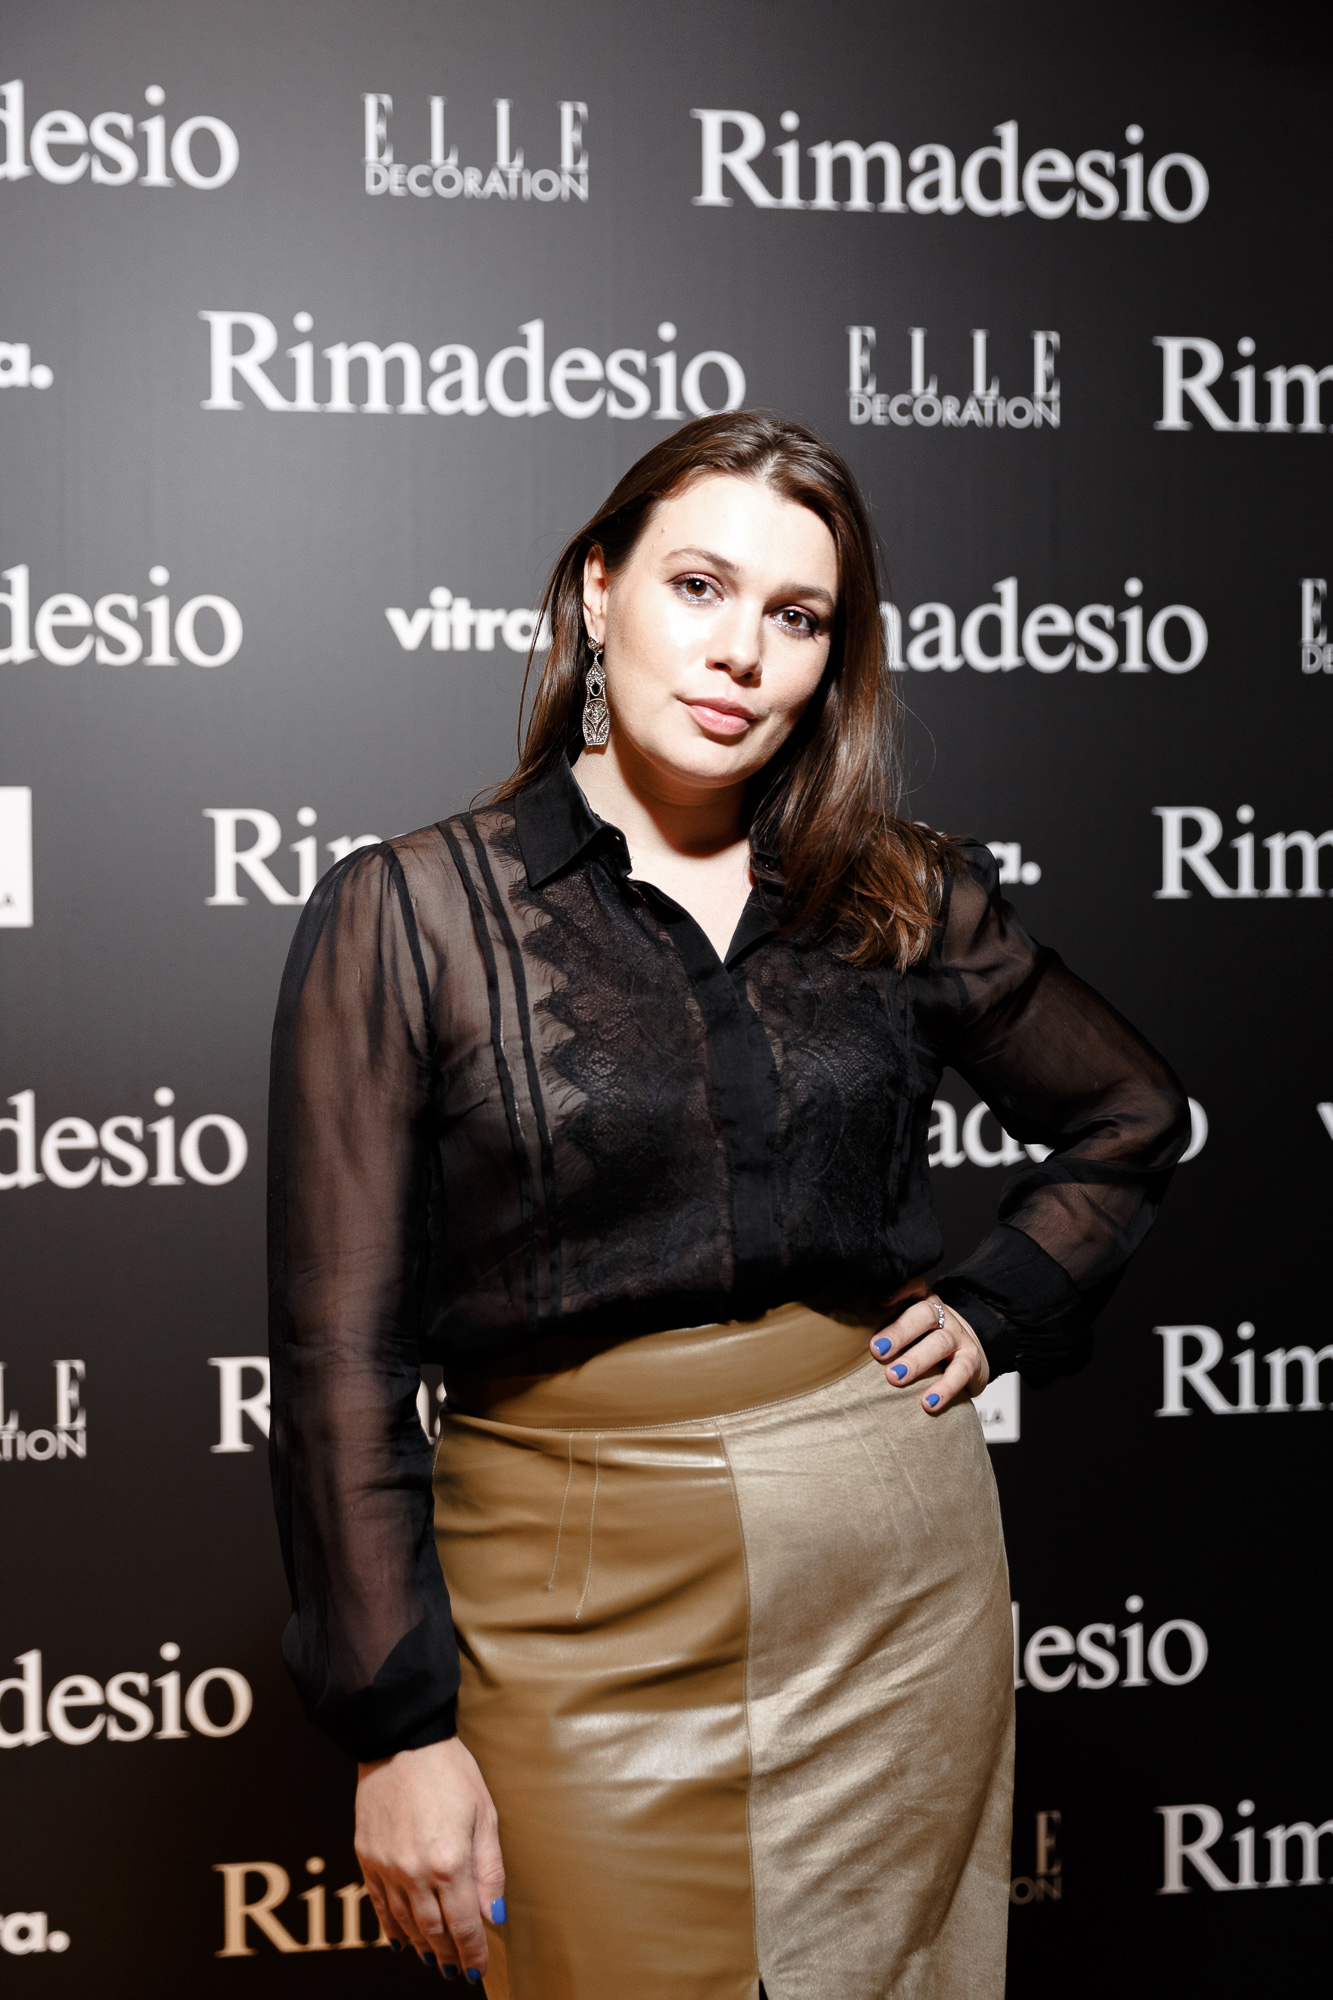 rimadesio-moscow-177